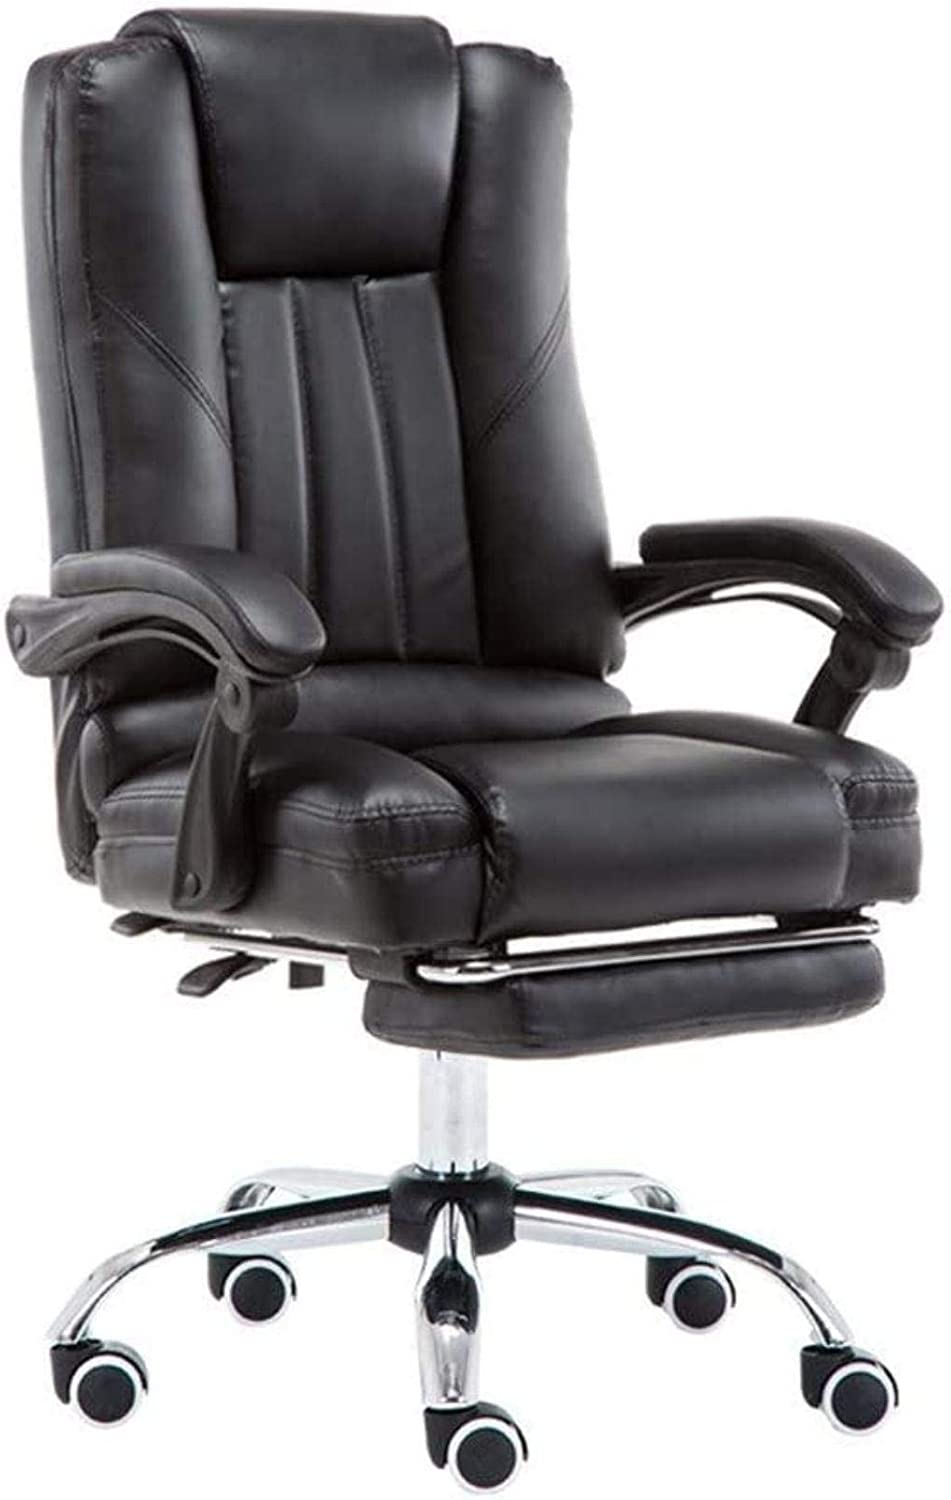 File Max 79% OFF Cabinets Armchair Gaming High order Office Chair Boss Long-Seat